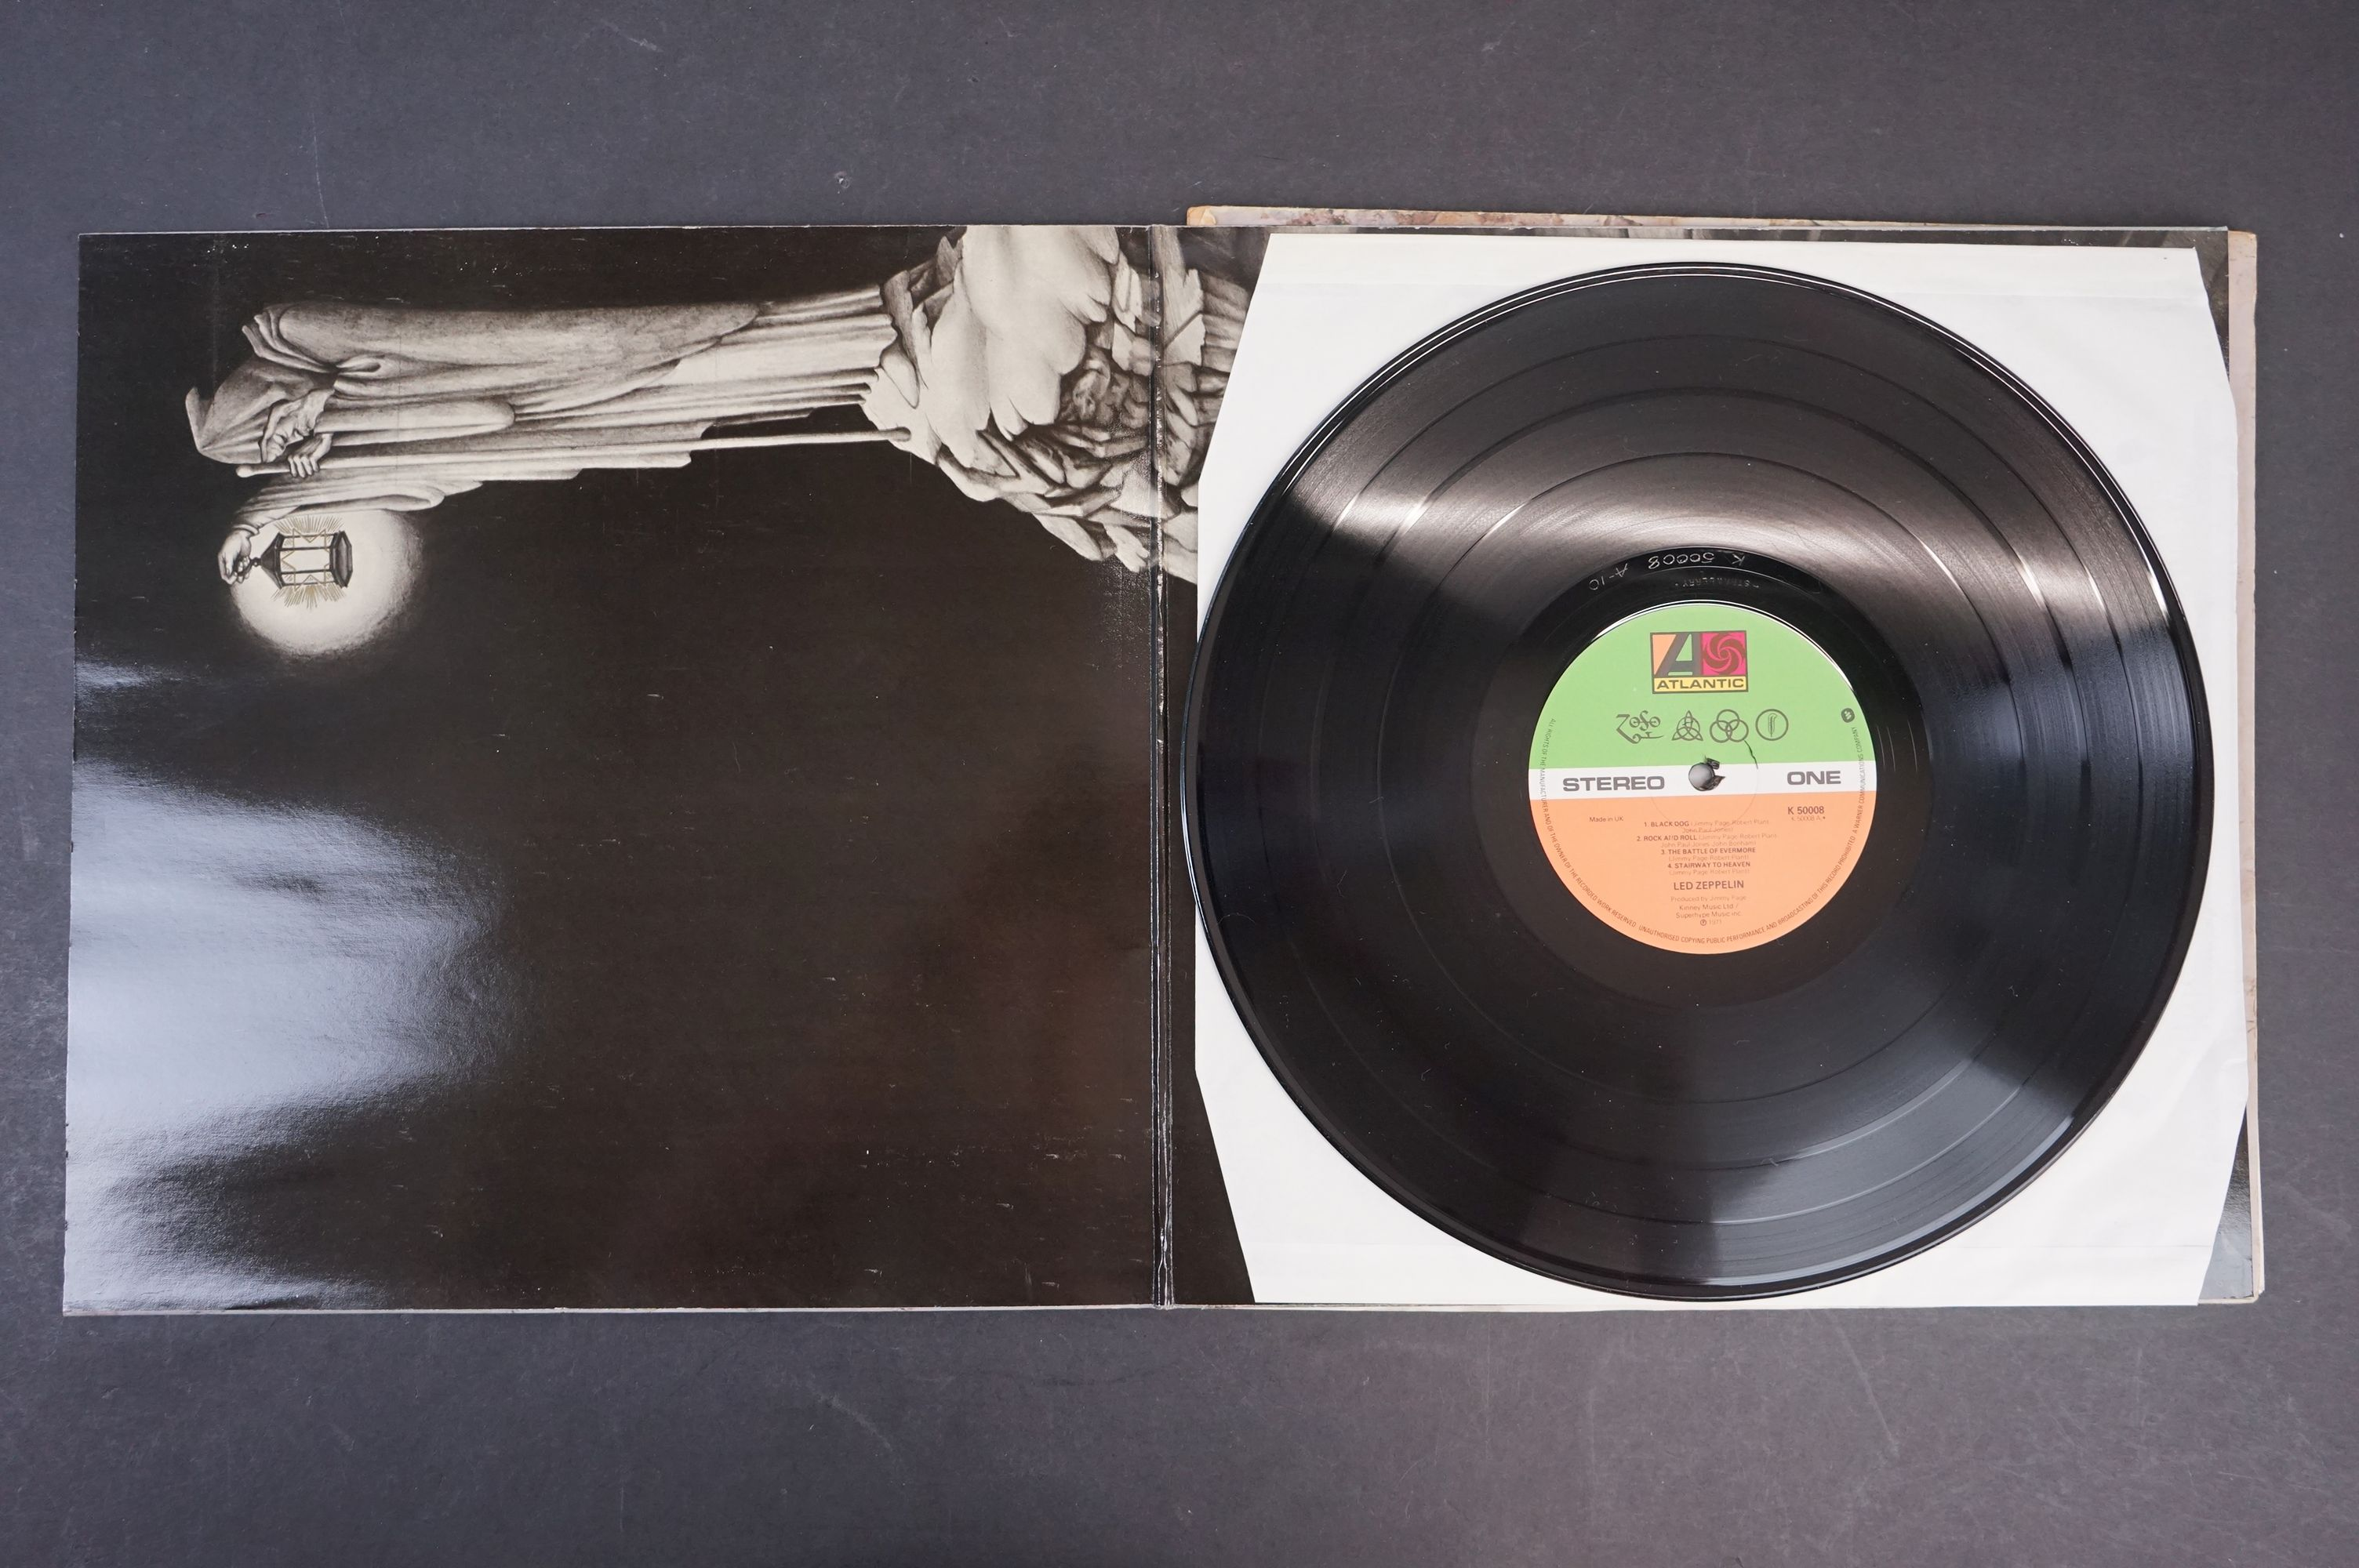 Vinyl - Six Led Zeppelin LPs to include In Through the Outdoor (cover D) SSK59410, Coda 790051, 2 - Image 11 of 17